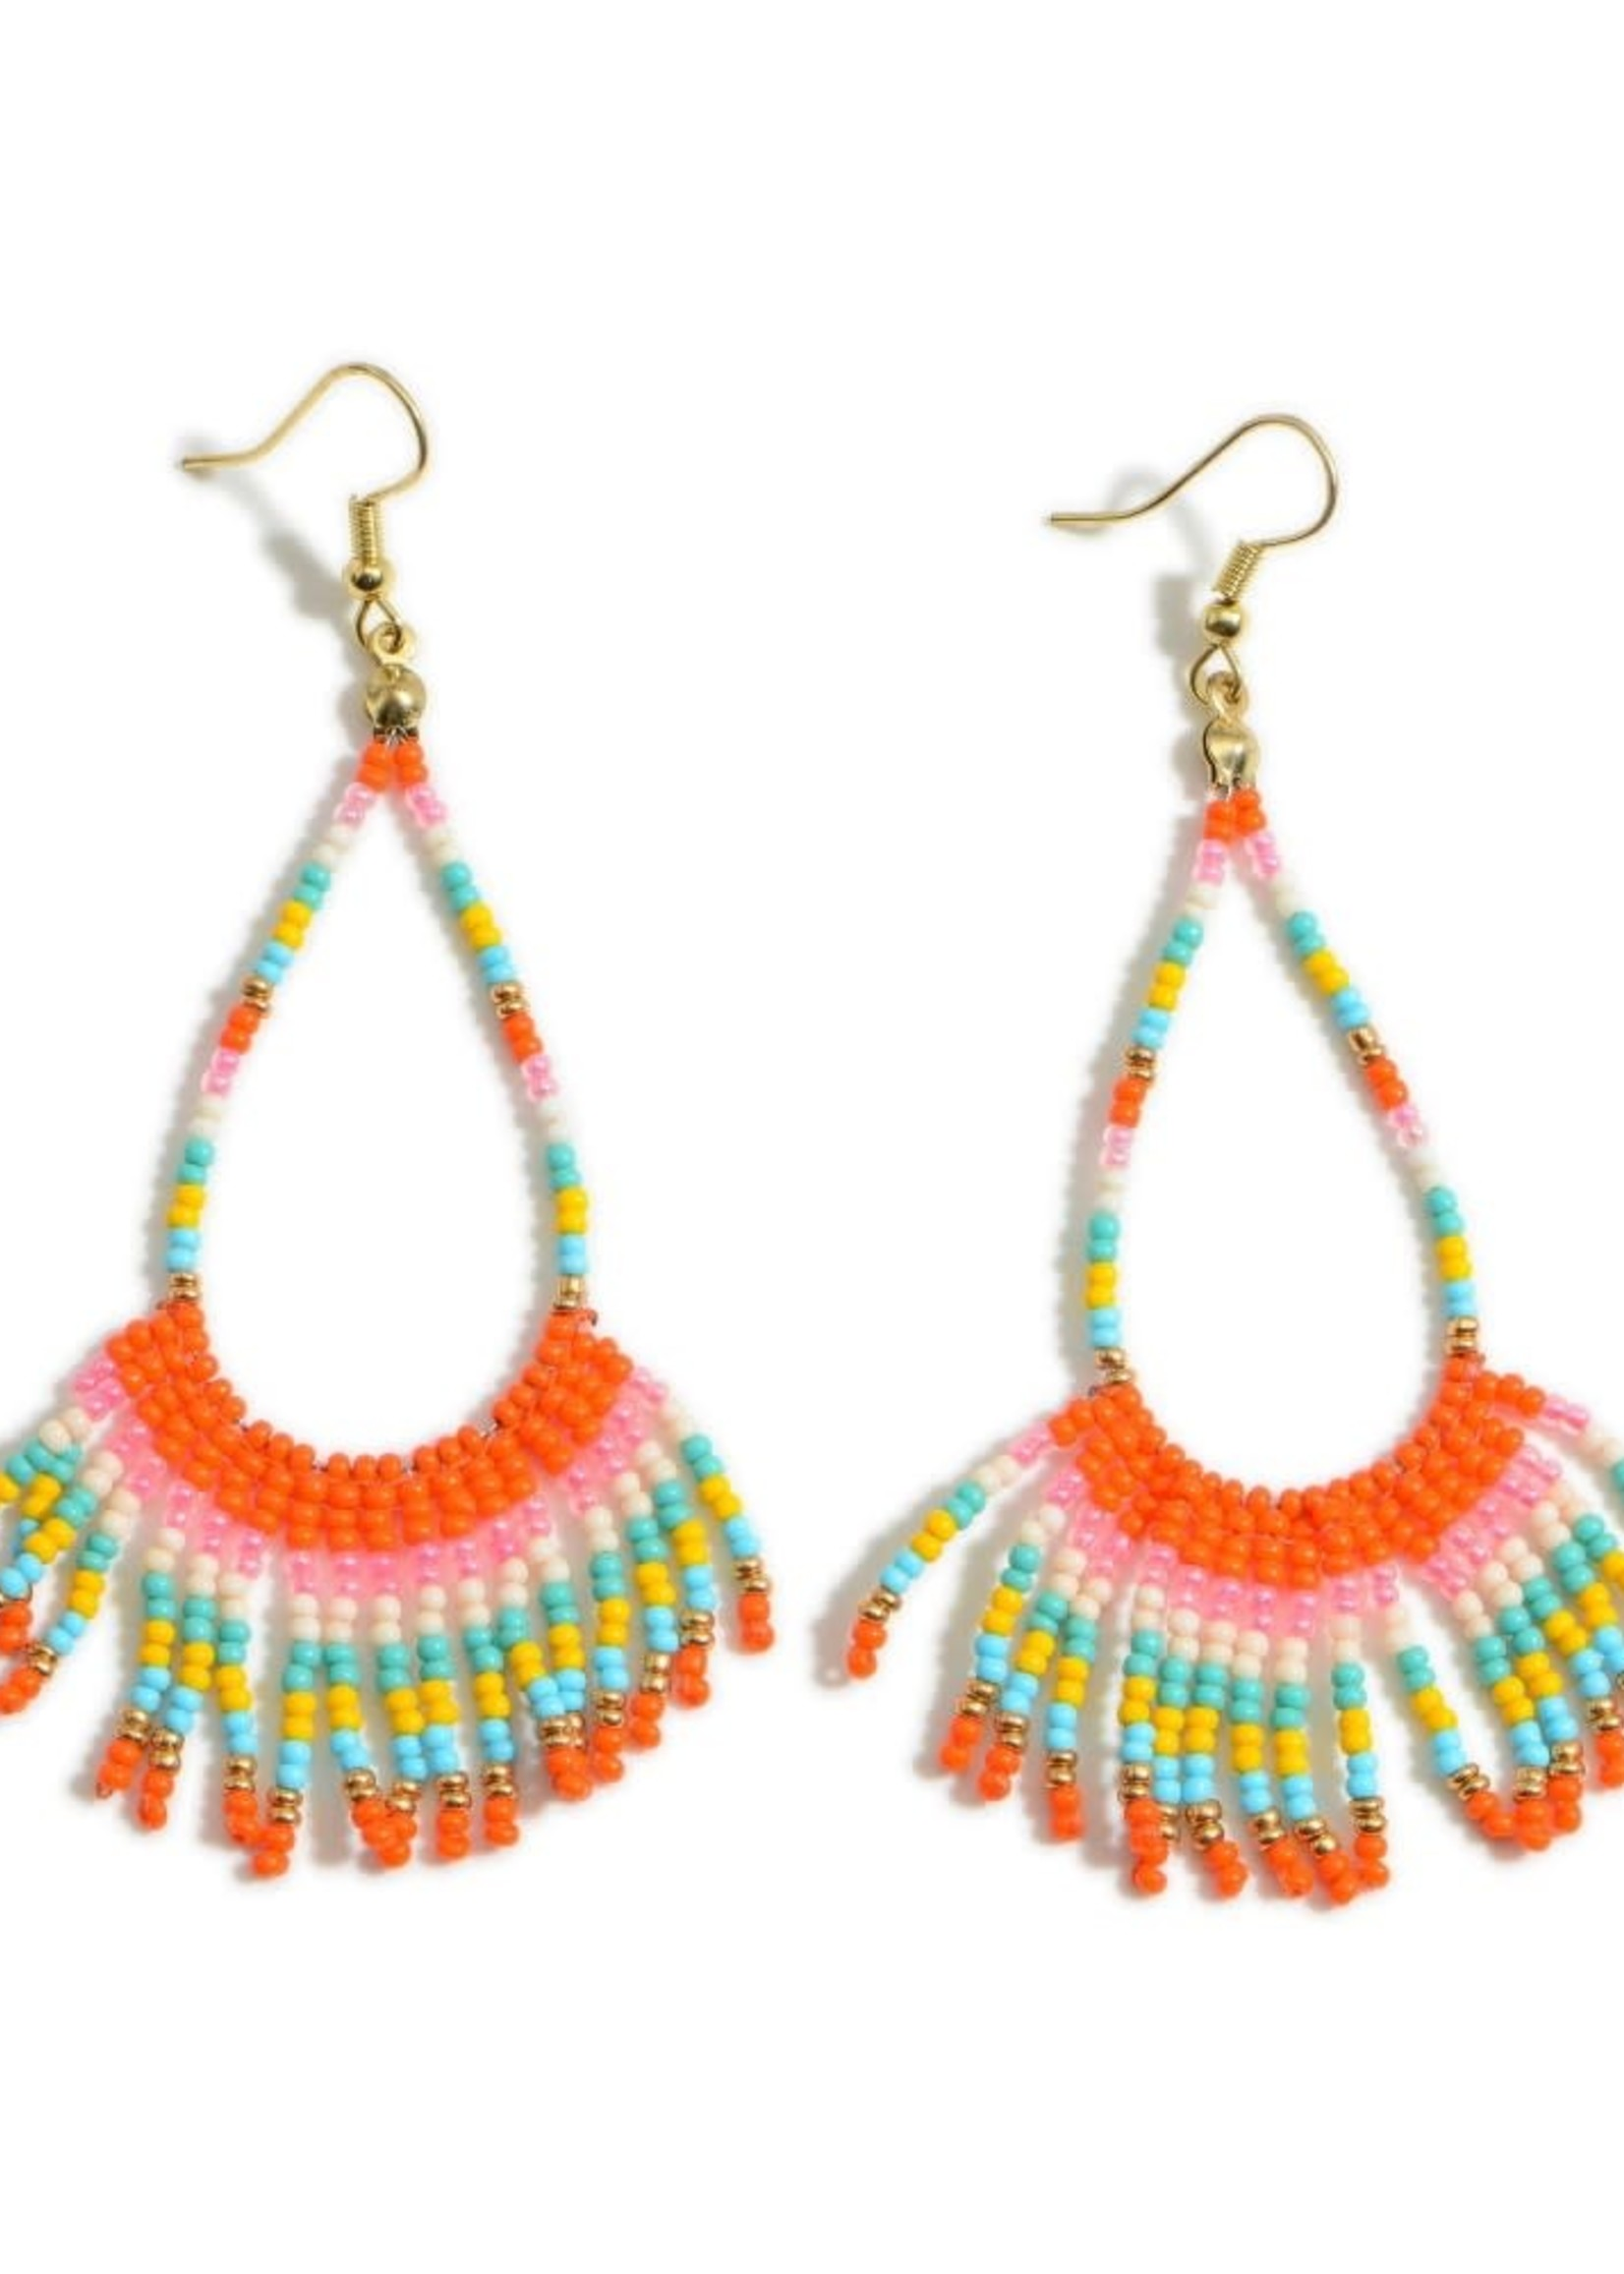 Beaded Drop Earrings Featuring Gold Details